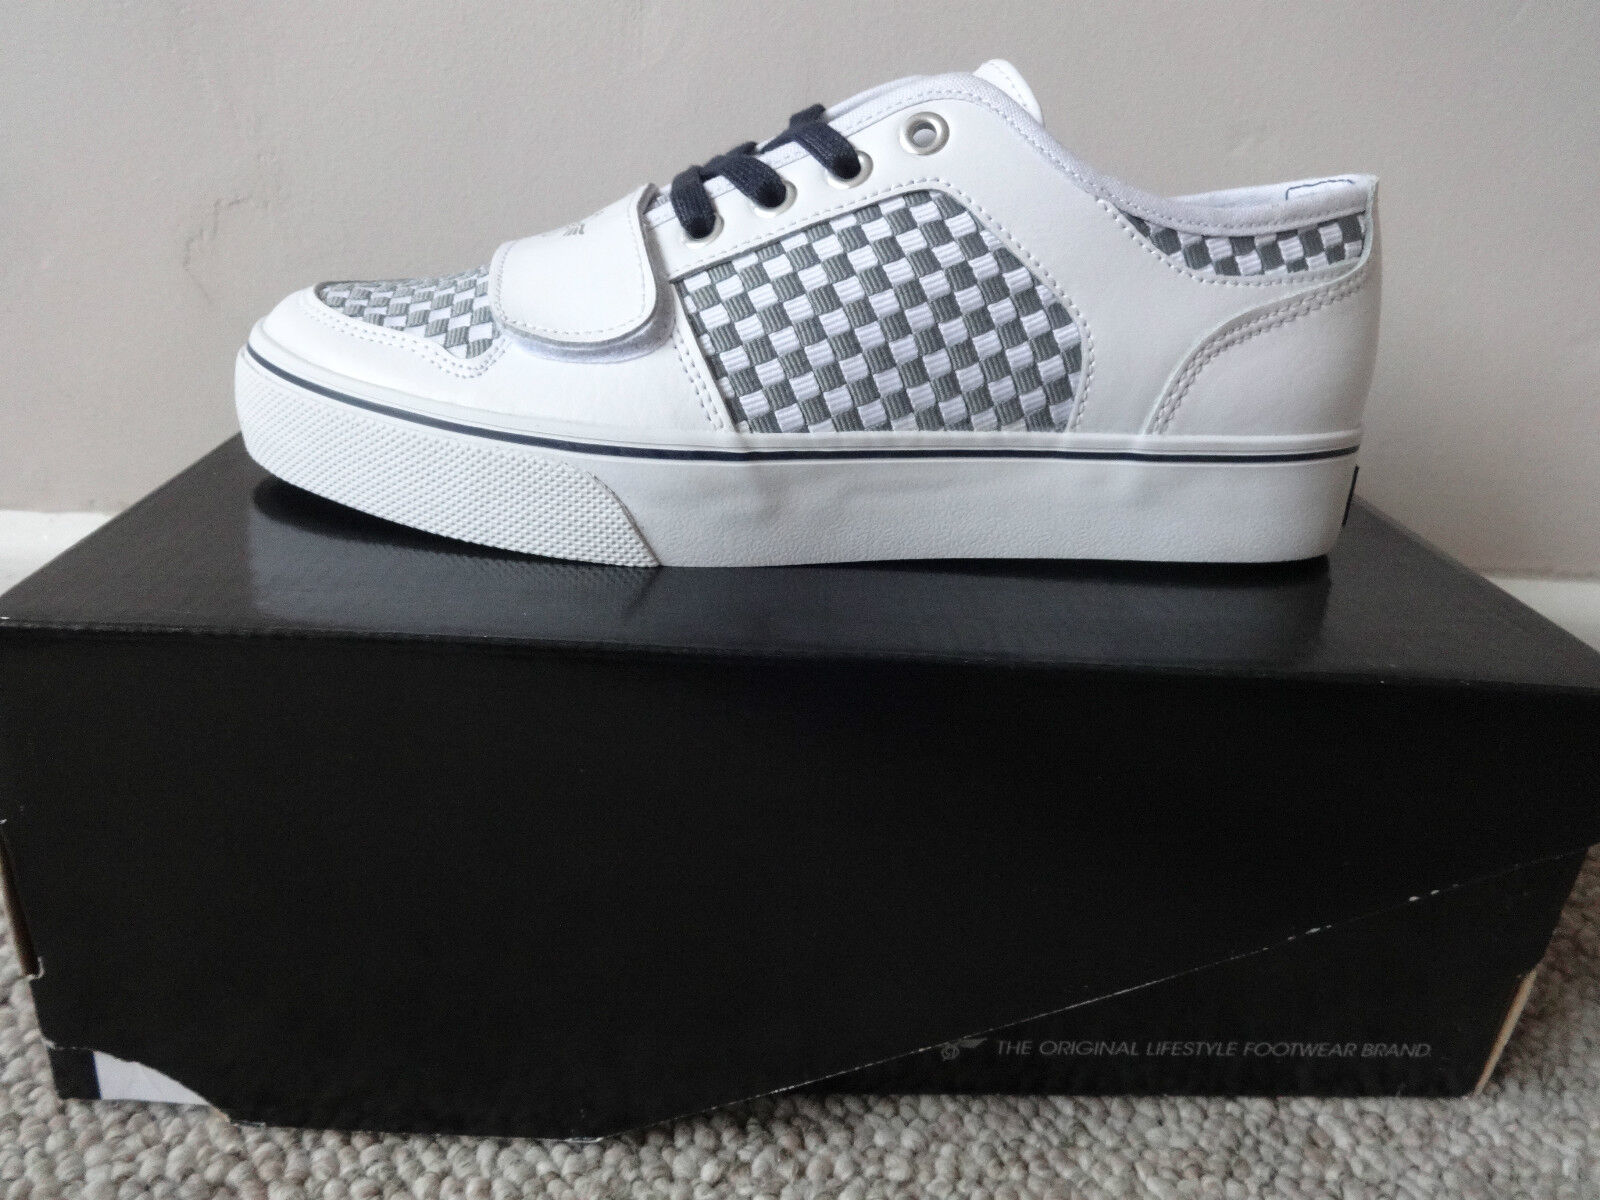 Creative Recreations Cesario UVCR4LO14 mens shoes trainers white new with box.